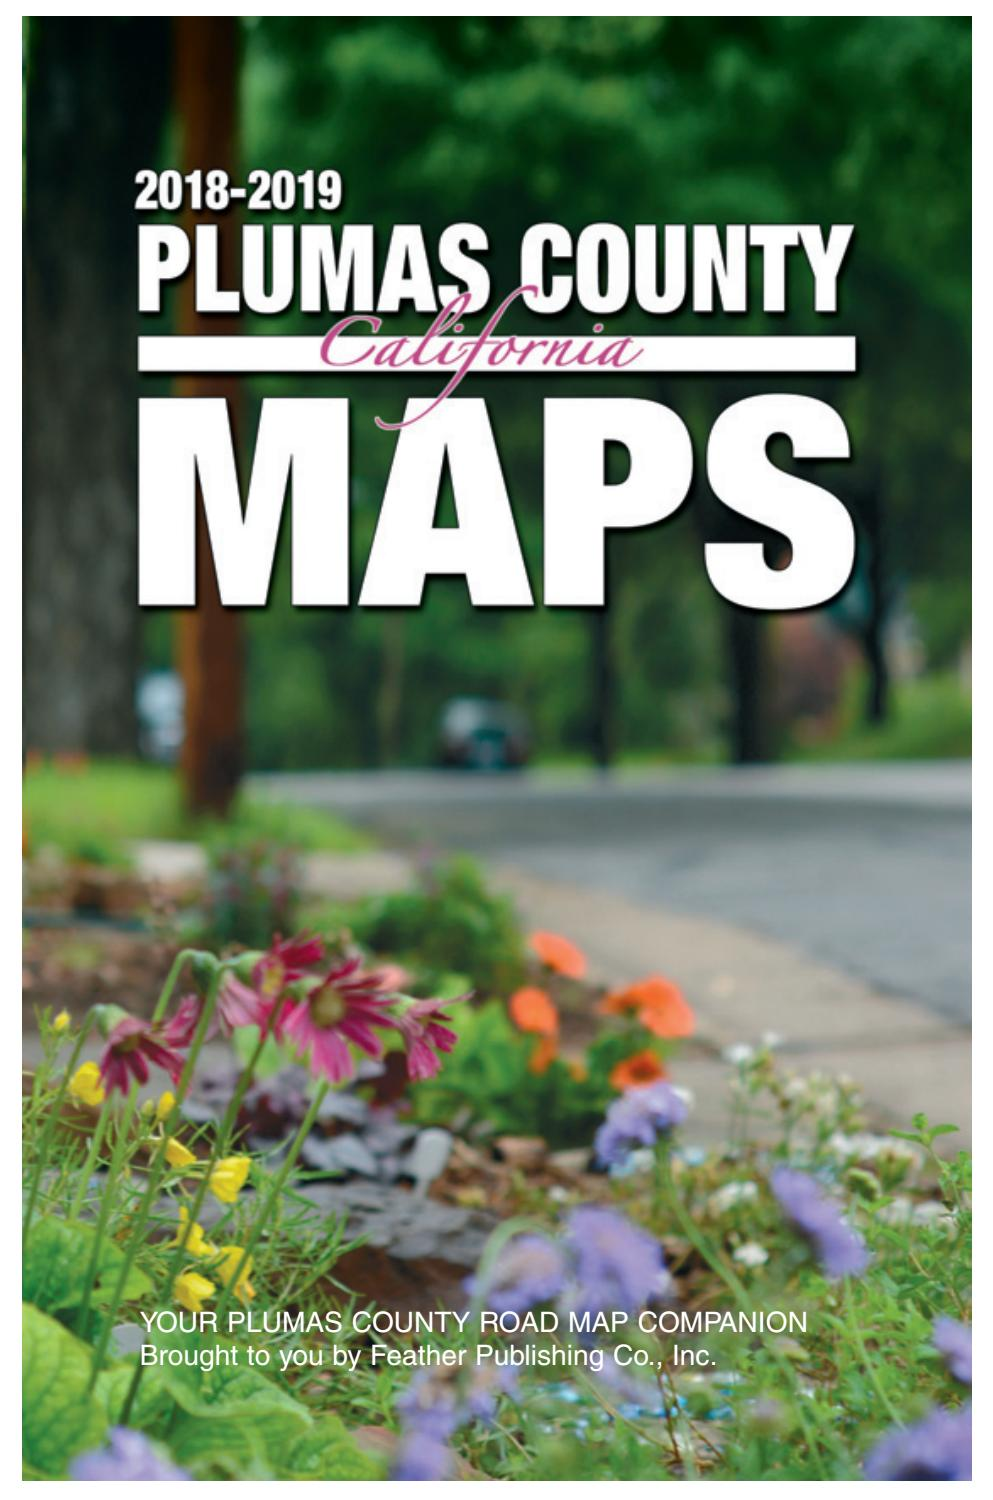 Plumas County Maps 2018-2019 by Feather Publishing - issuu on california california map, redway california map, agoura hills california map, ragged point california map, loyalton california map, woodside california map, sacramento california map, taylorsville california map, janesville california map, doyle california map, gridley california map, norco california map, murrieta california map, houston california map, la california map, tacoma california map, san francisco bay california map, ogden california map, montclair california map, boise california map,